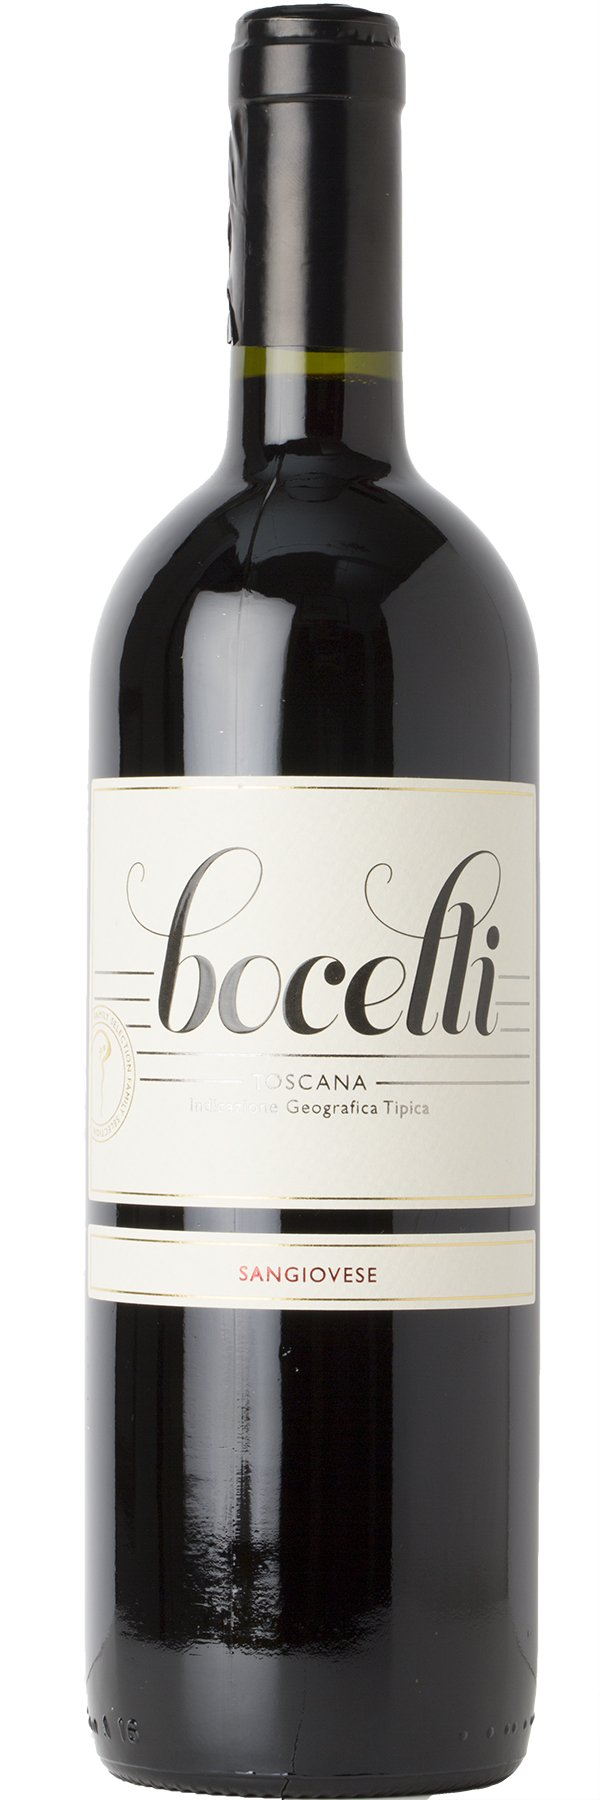 Bocelli Family Wines 'Rosso di Toscano' Sangiovese' IGT 2017-0